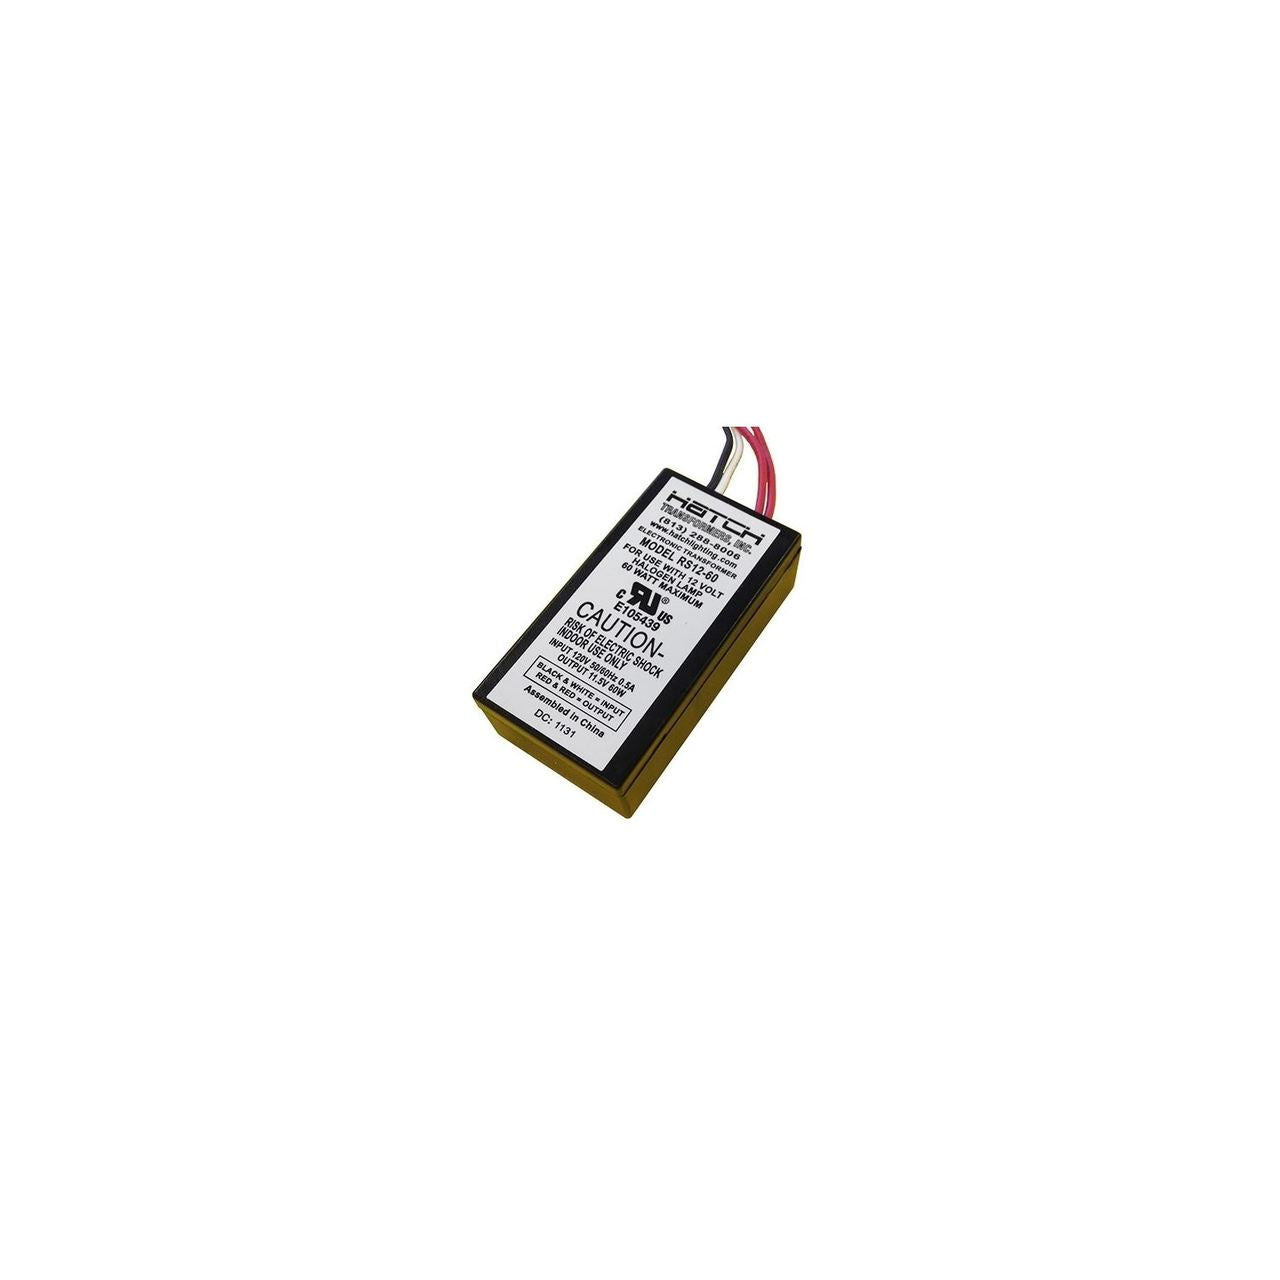 RS12-60 - 60w dimmable transformer - 120v-12v - Hatch